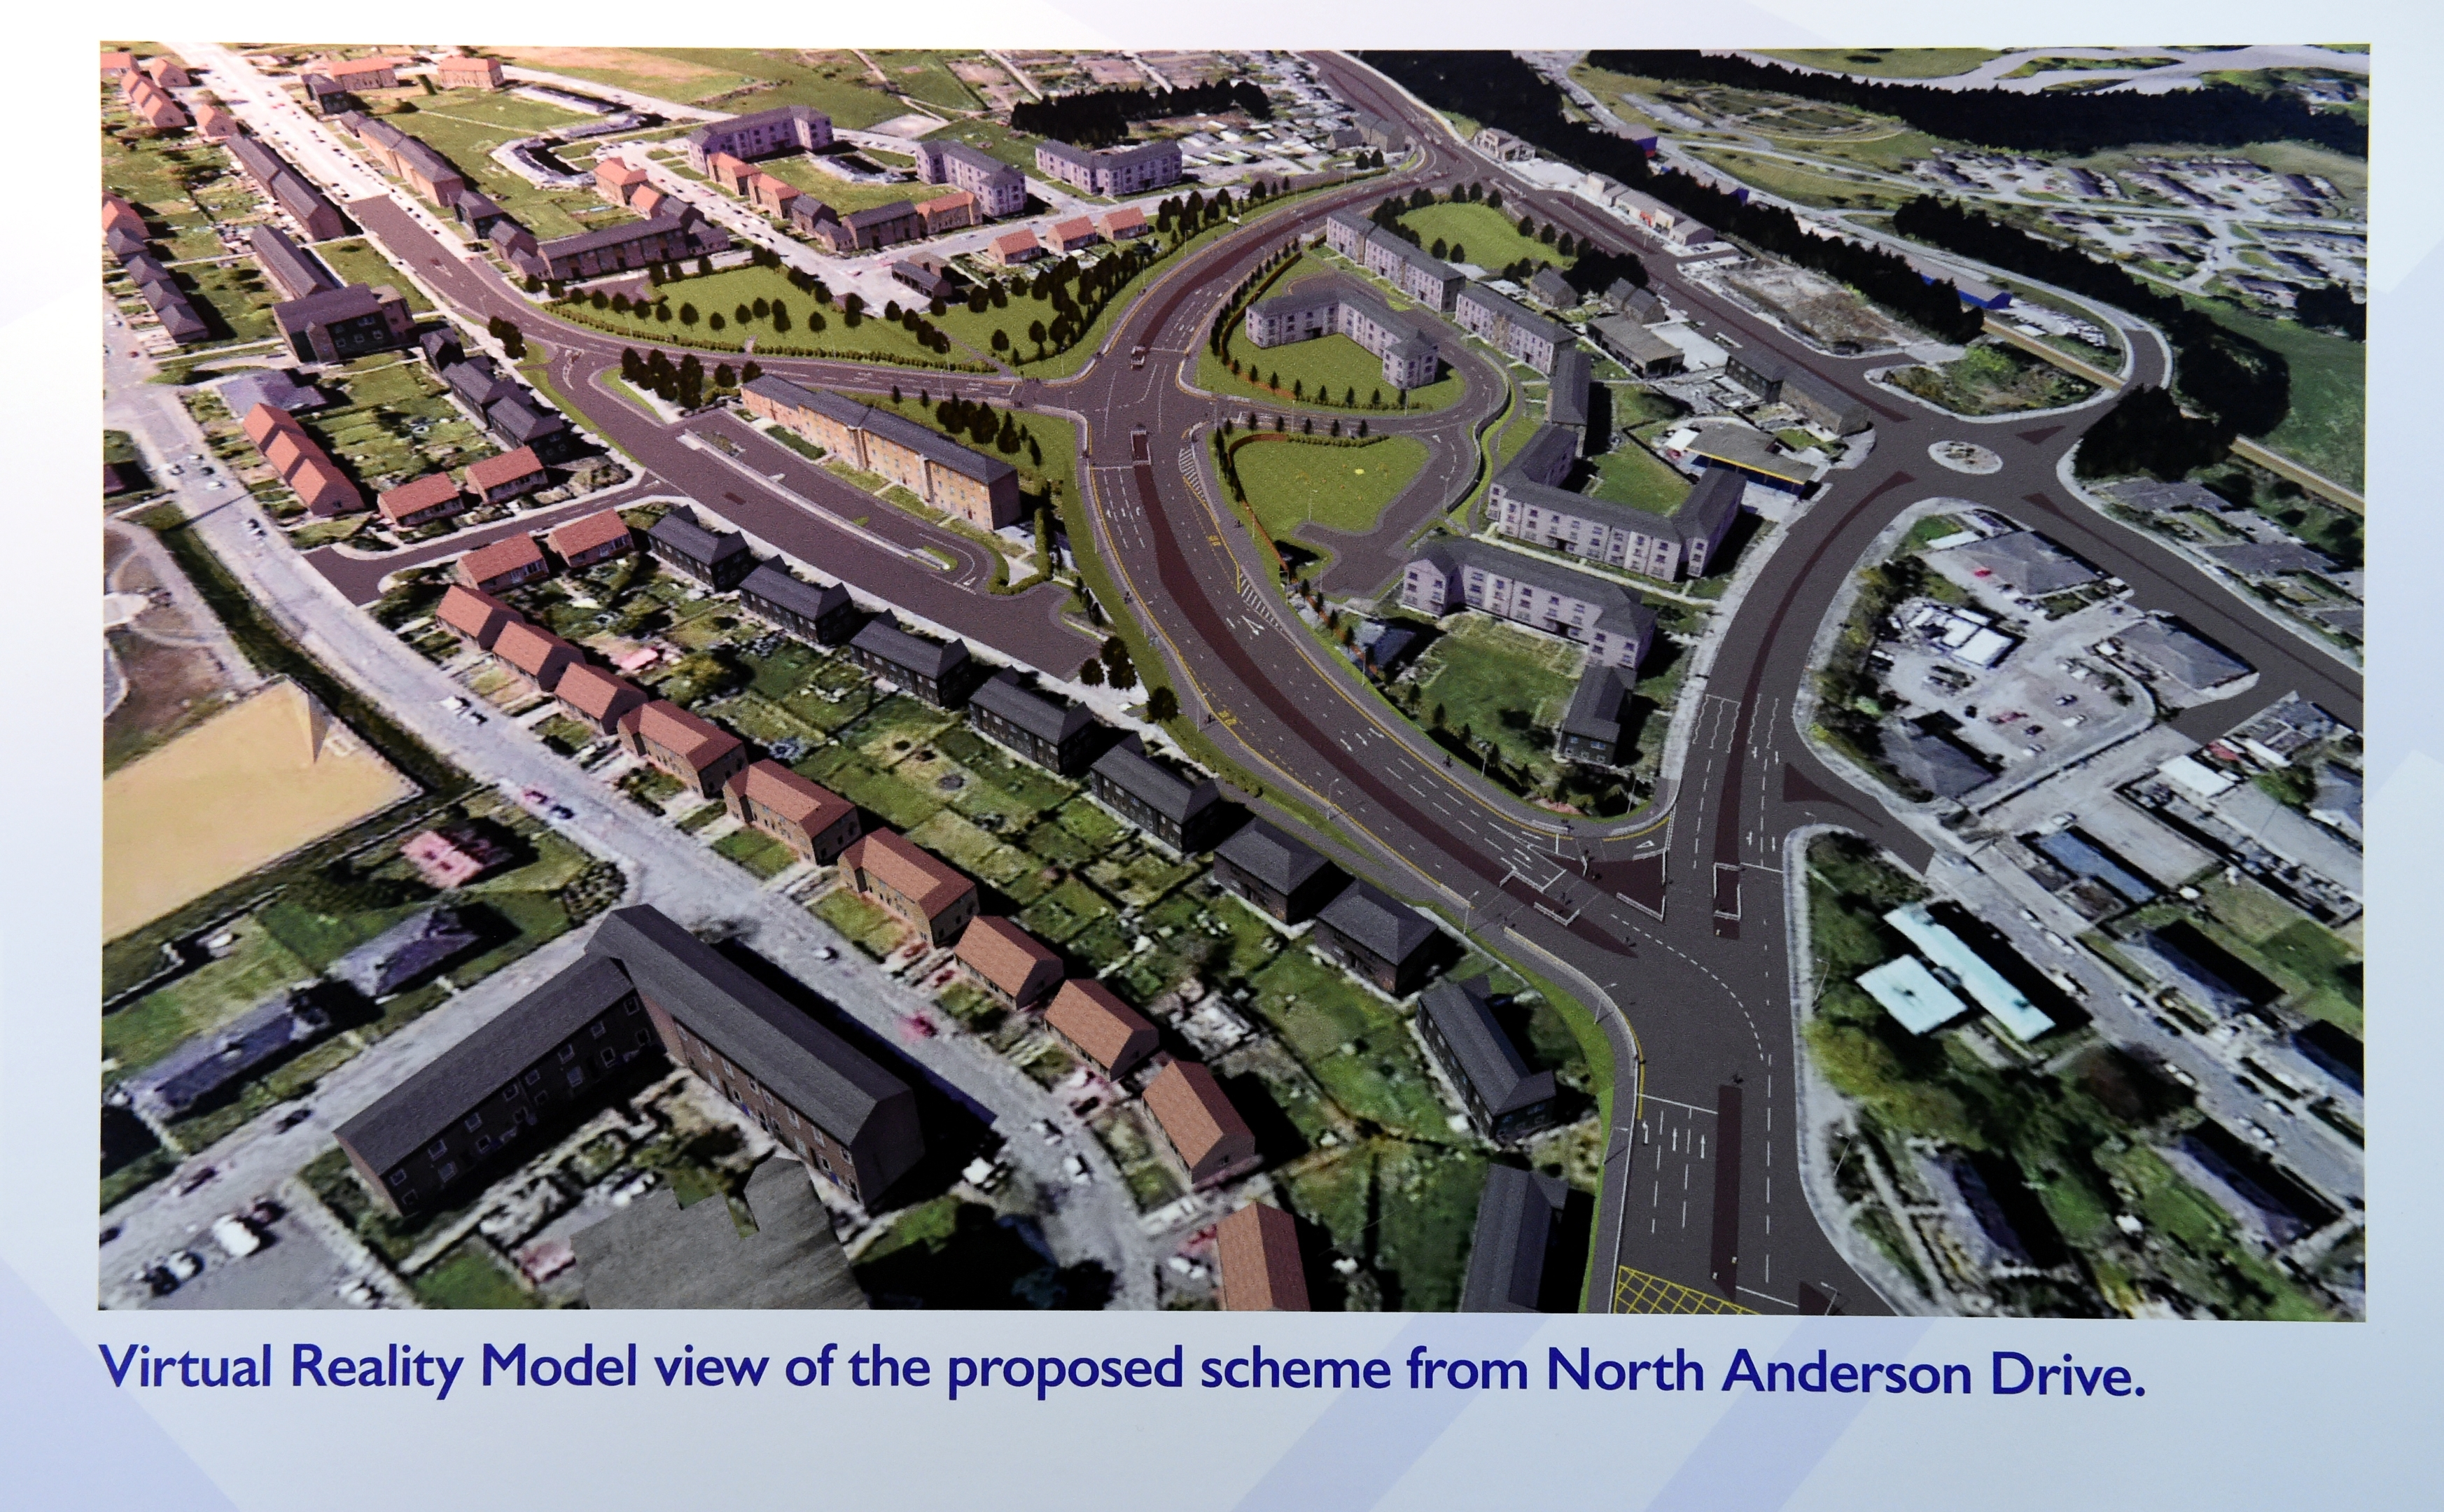 Proposed design for improvements to the Haudagain Roundabout